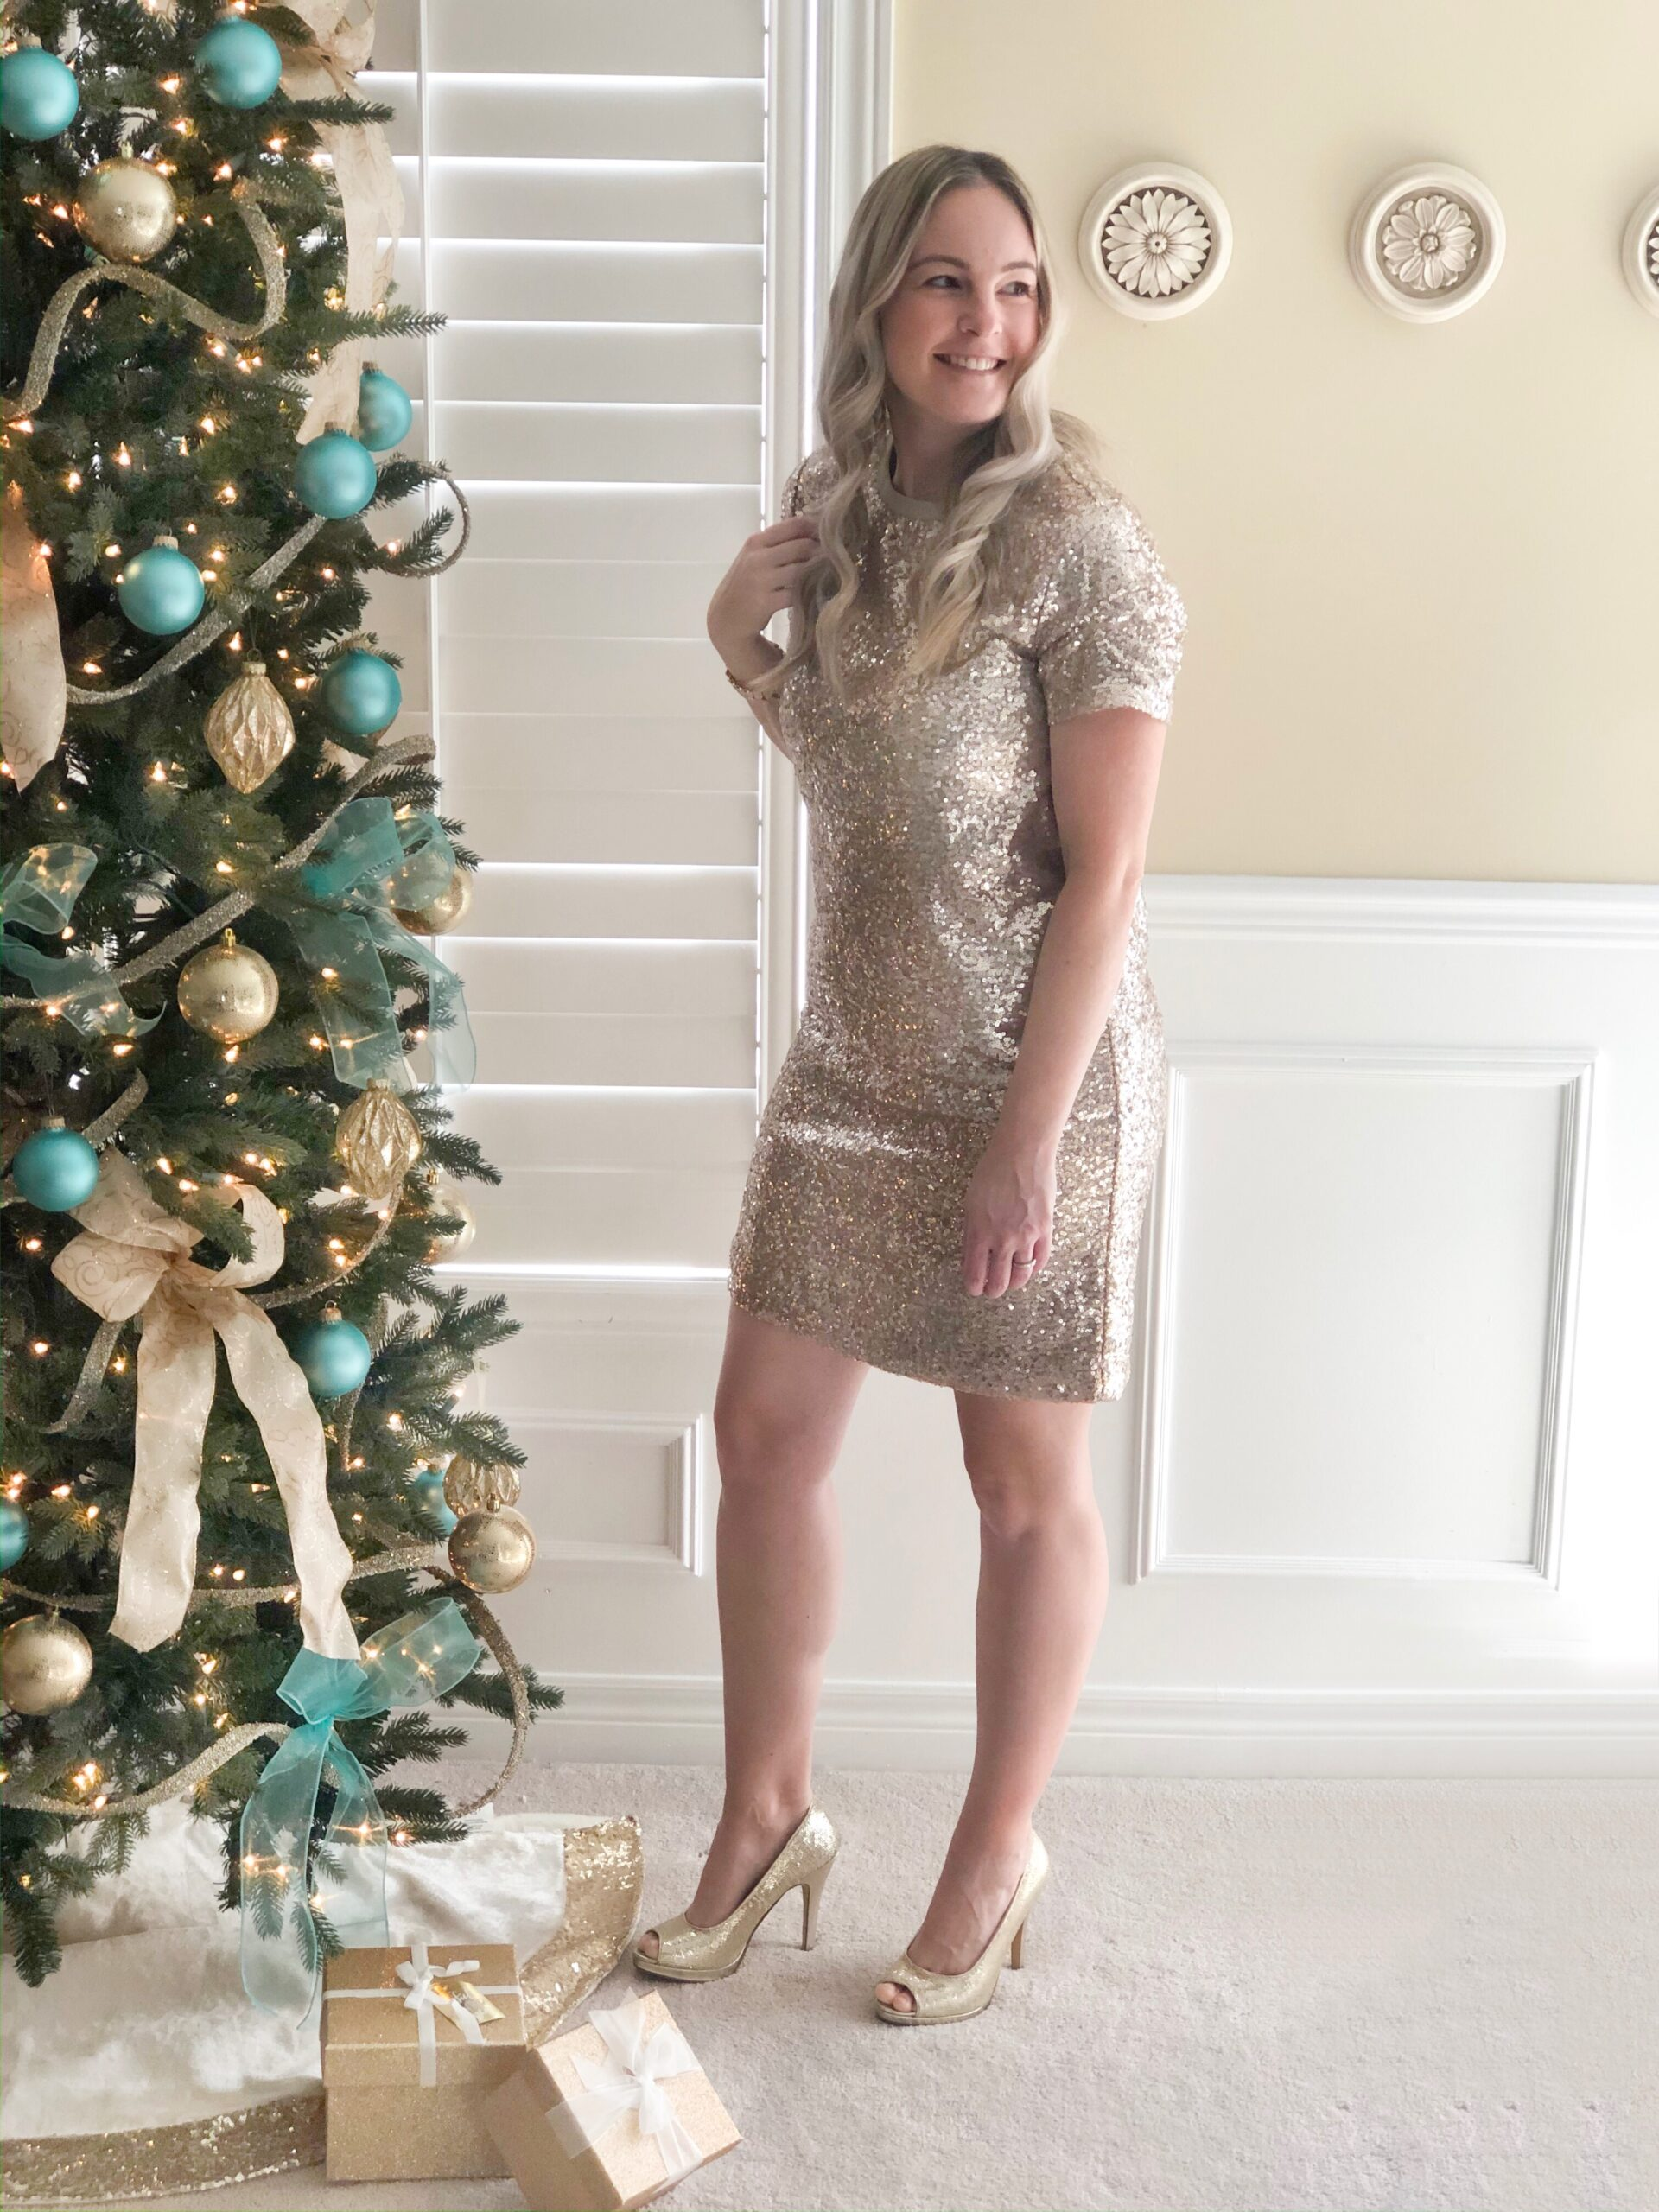 Gold Sequin Dress from Joe Fresh on Livin' Life with Style